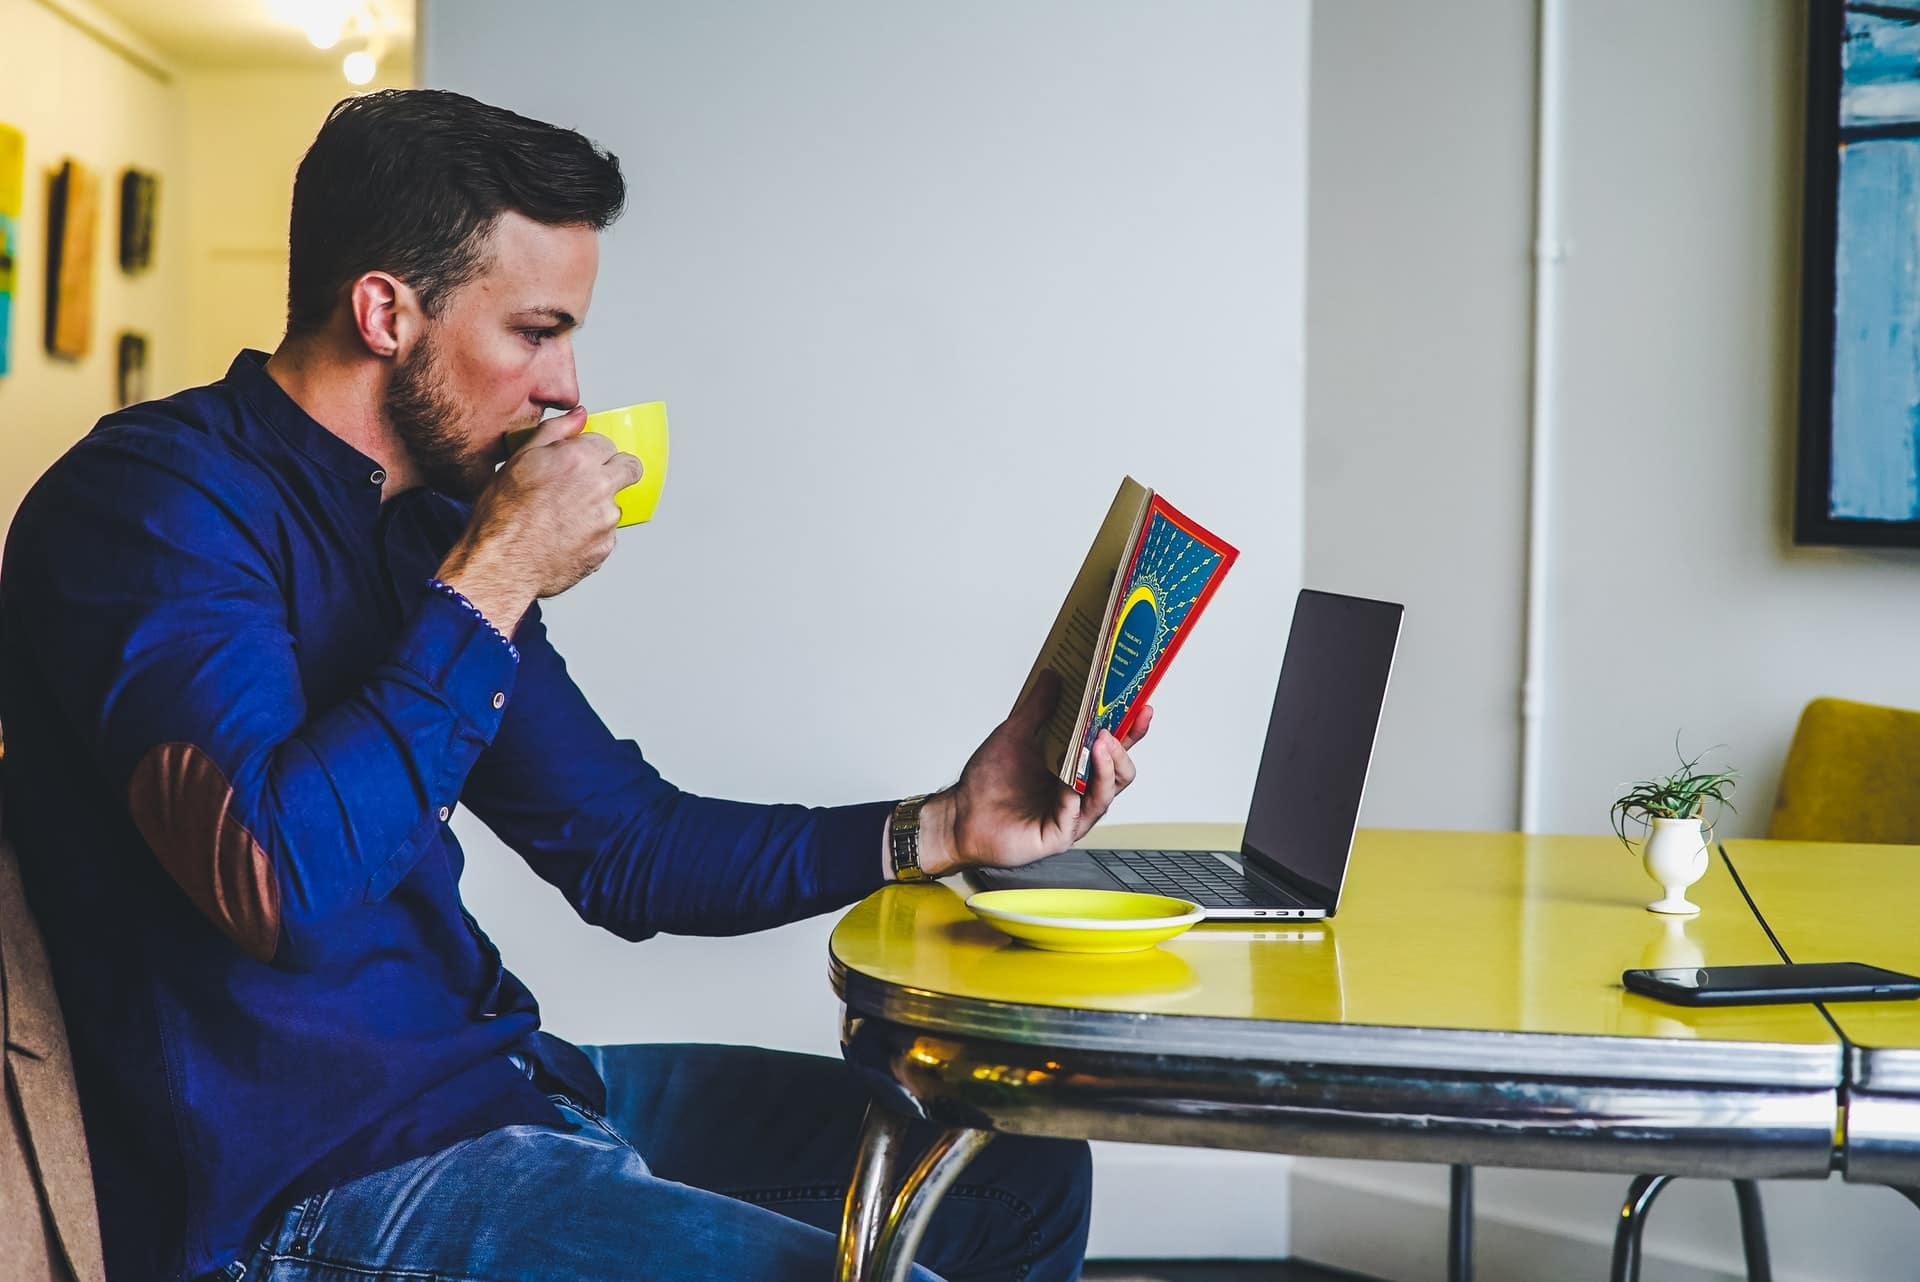 Man drinking coffee reading a book by his laptop